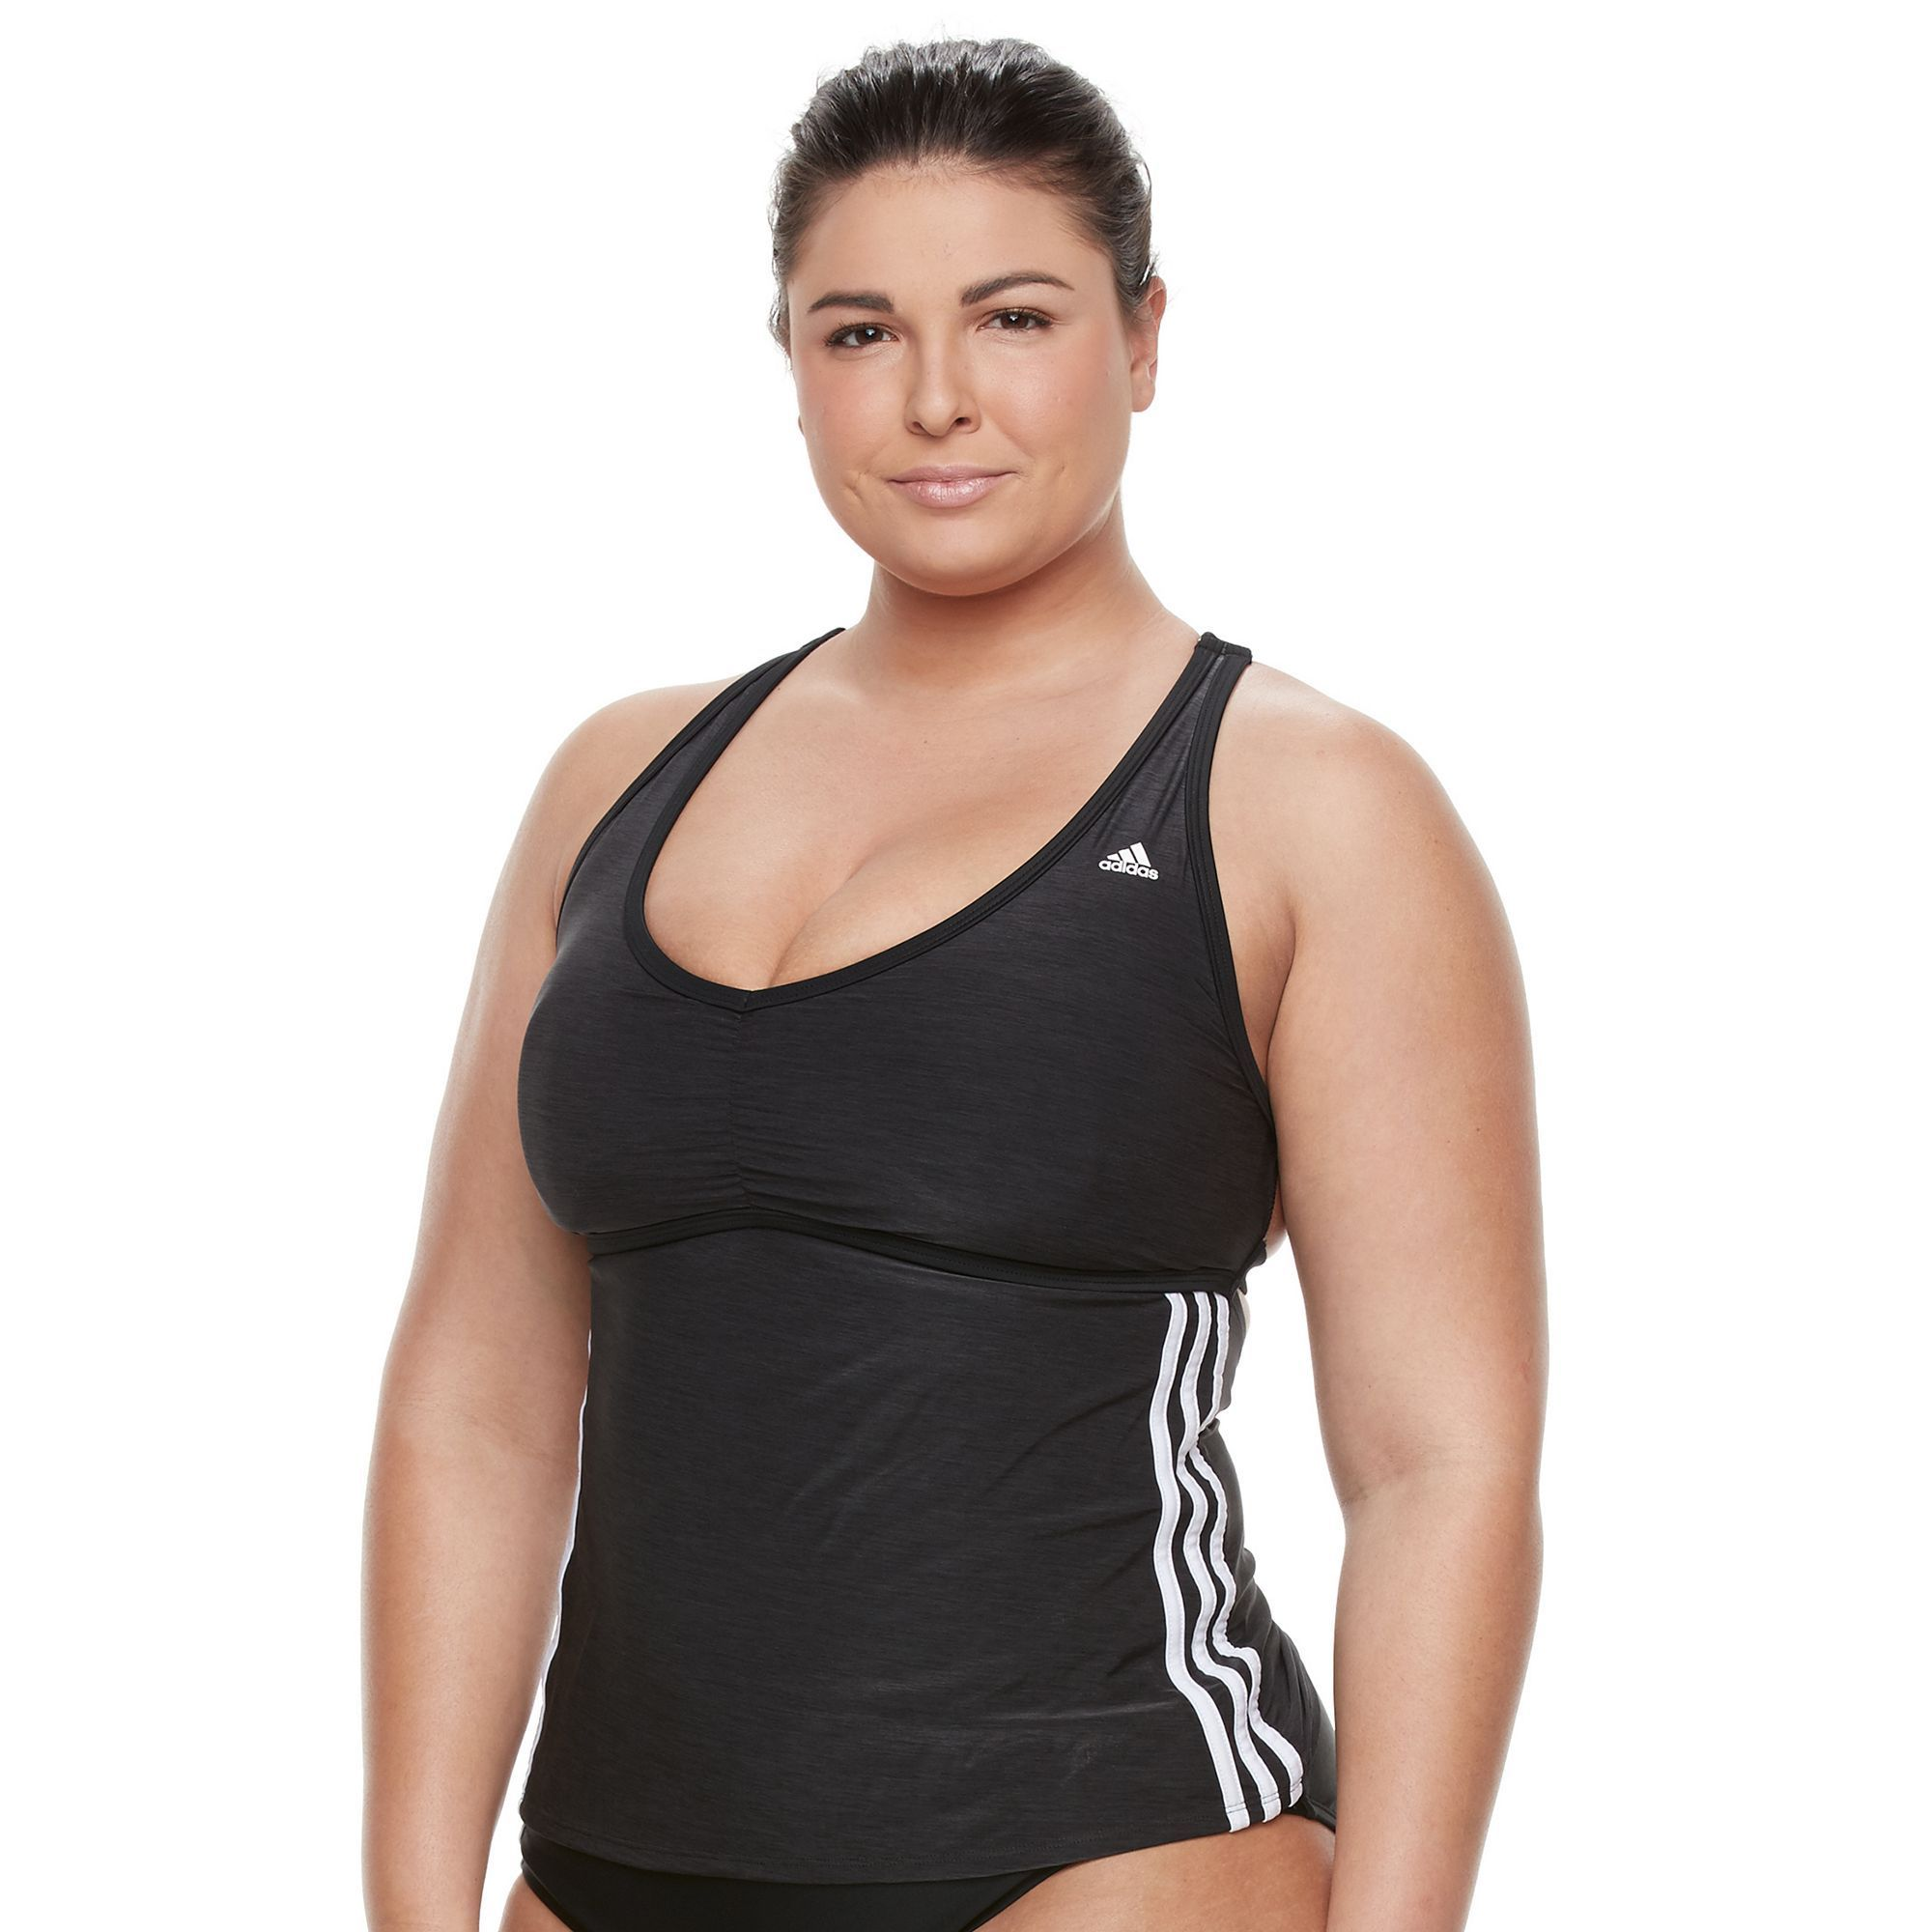 2be8c930f0 Plus Size Adidas Light As Heather Sporty Tankini Top, Women's, Size: 2XL,  Black